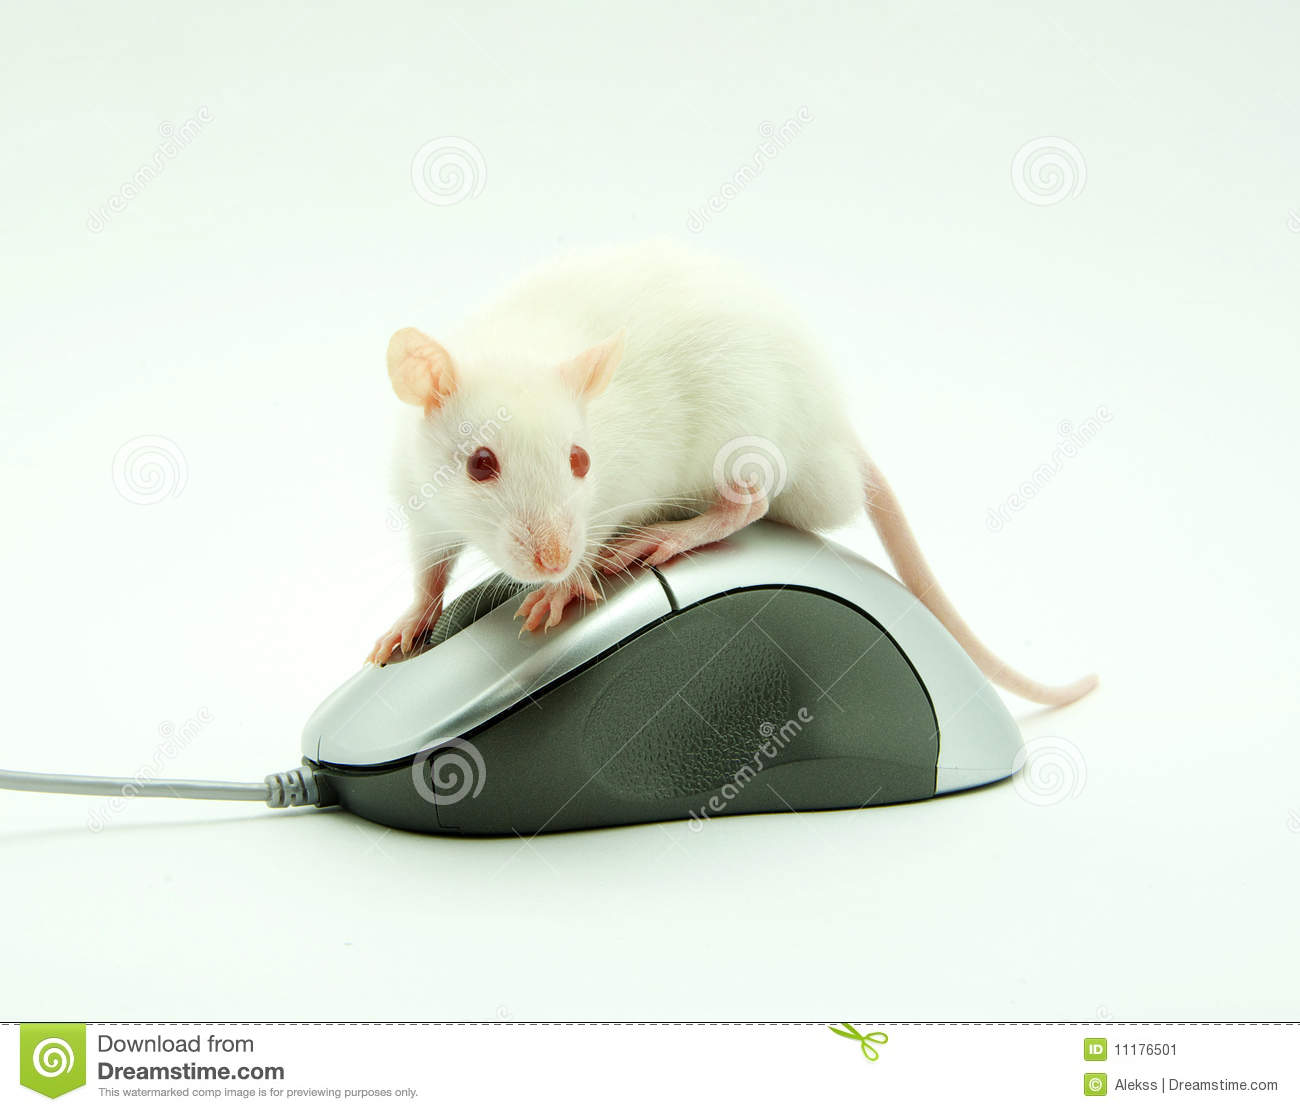 how to delete rat from computer